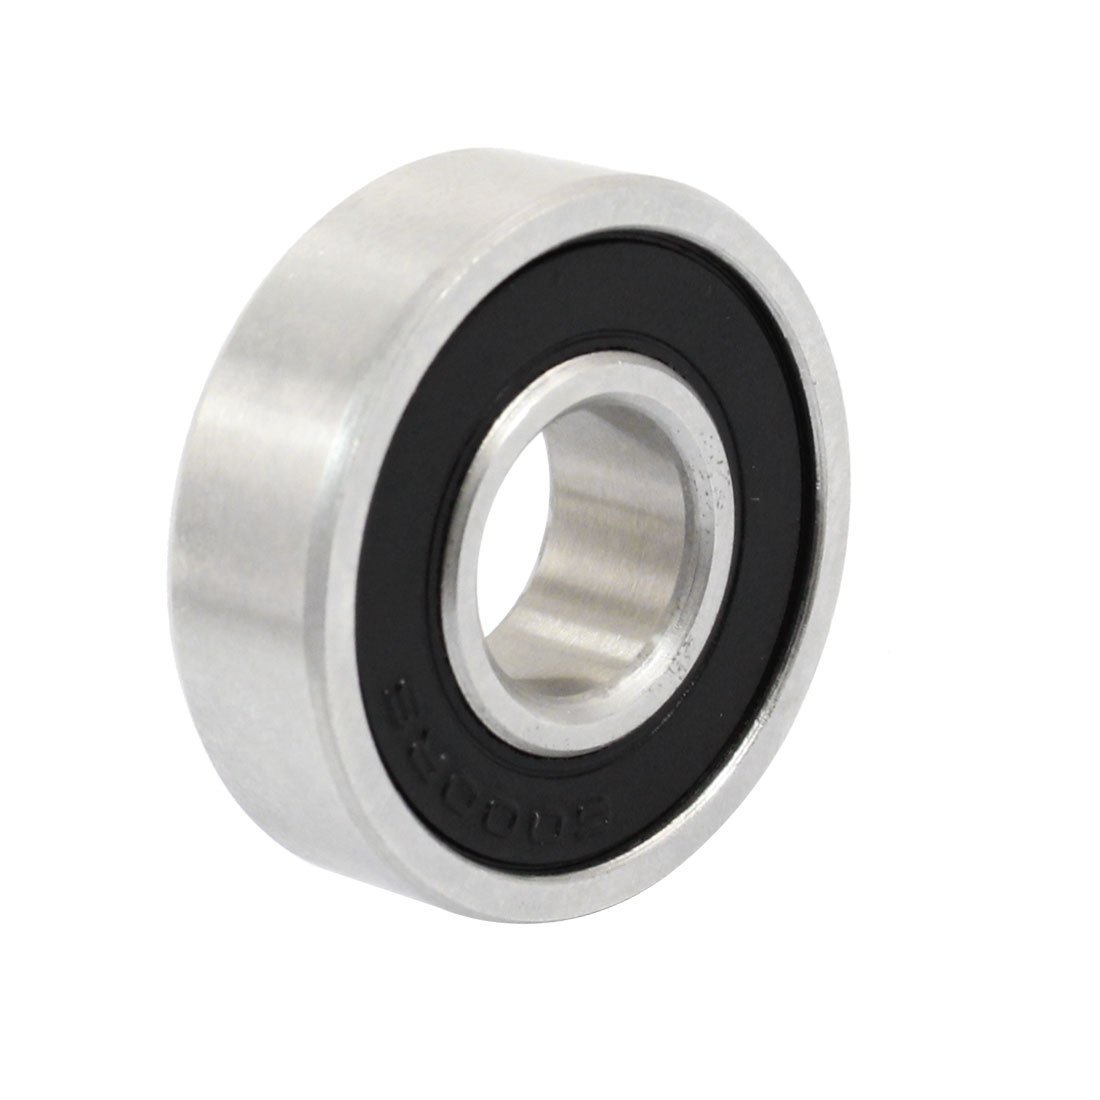 uxcell 6000RS 10mm x 26mm x 8mm Rubber Sealed Deep Groove Ball Bearing a14062500ux0088